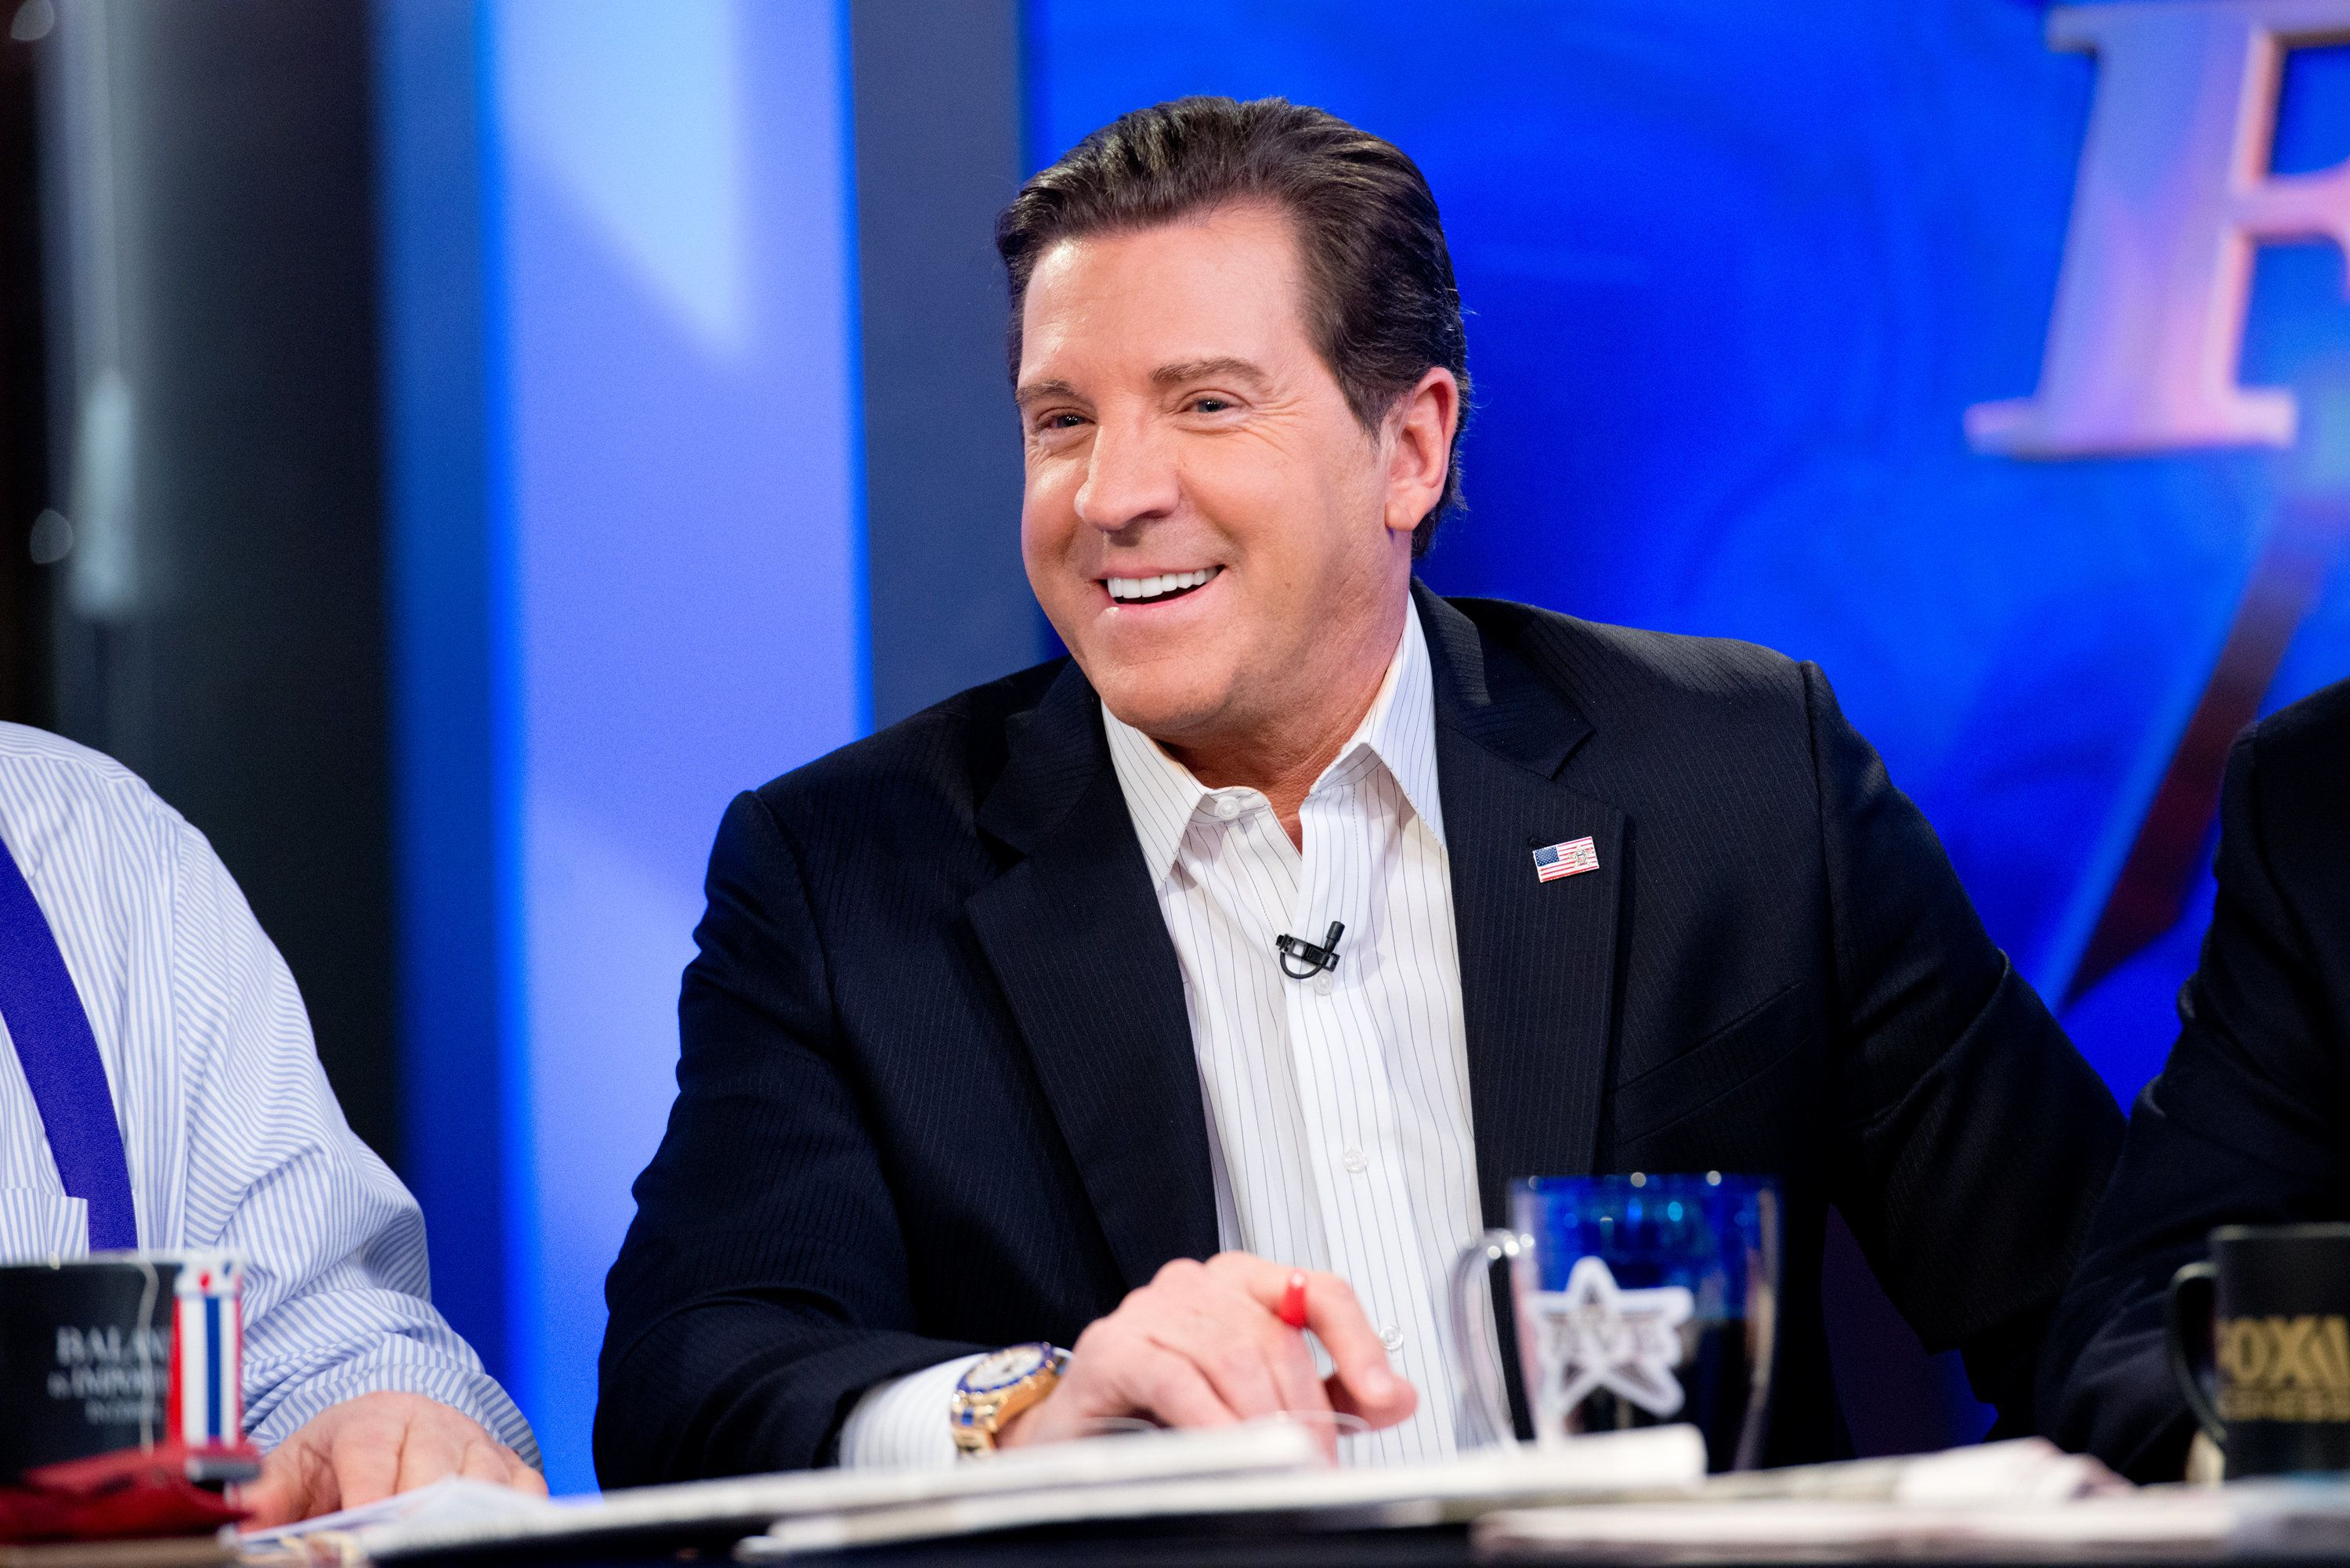 Eric Bolling loves to fuck in his office surrounded by baseball jerseys